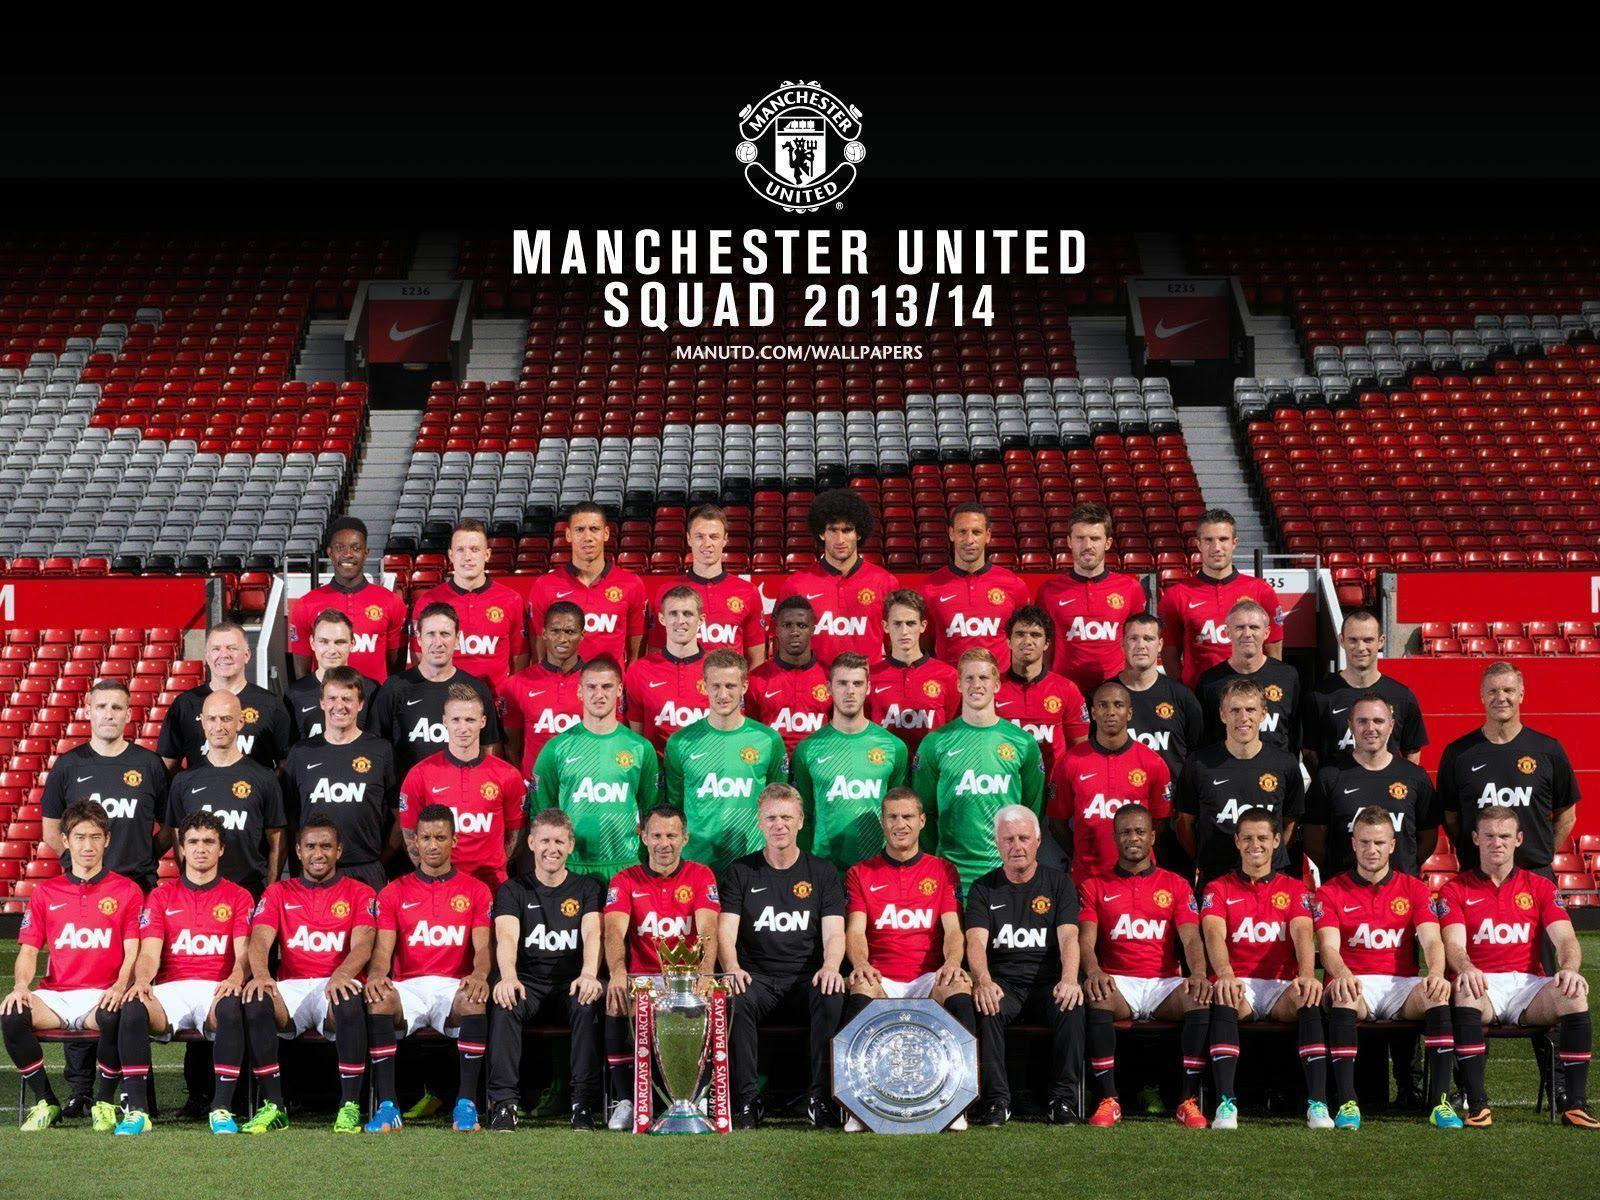 Manchester City Wallpapers Full Team 2016 Manchester United 2013